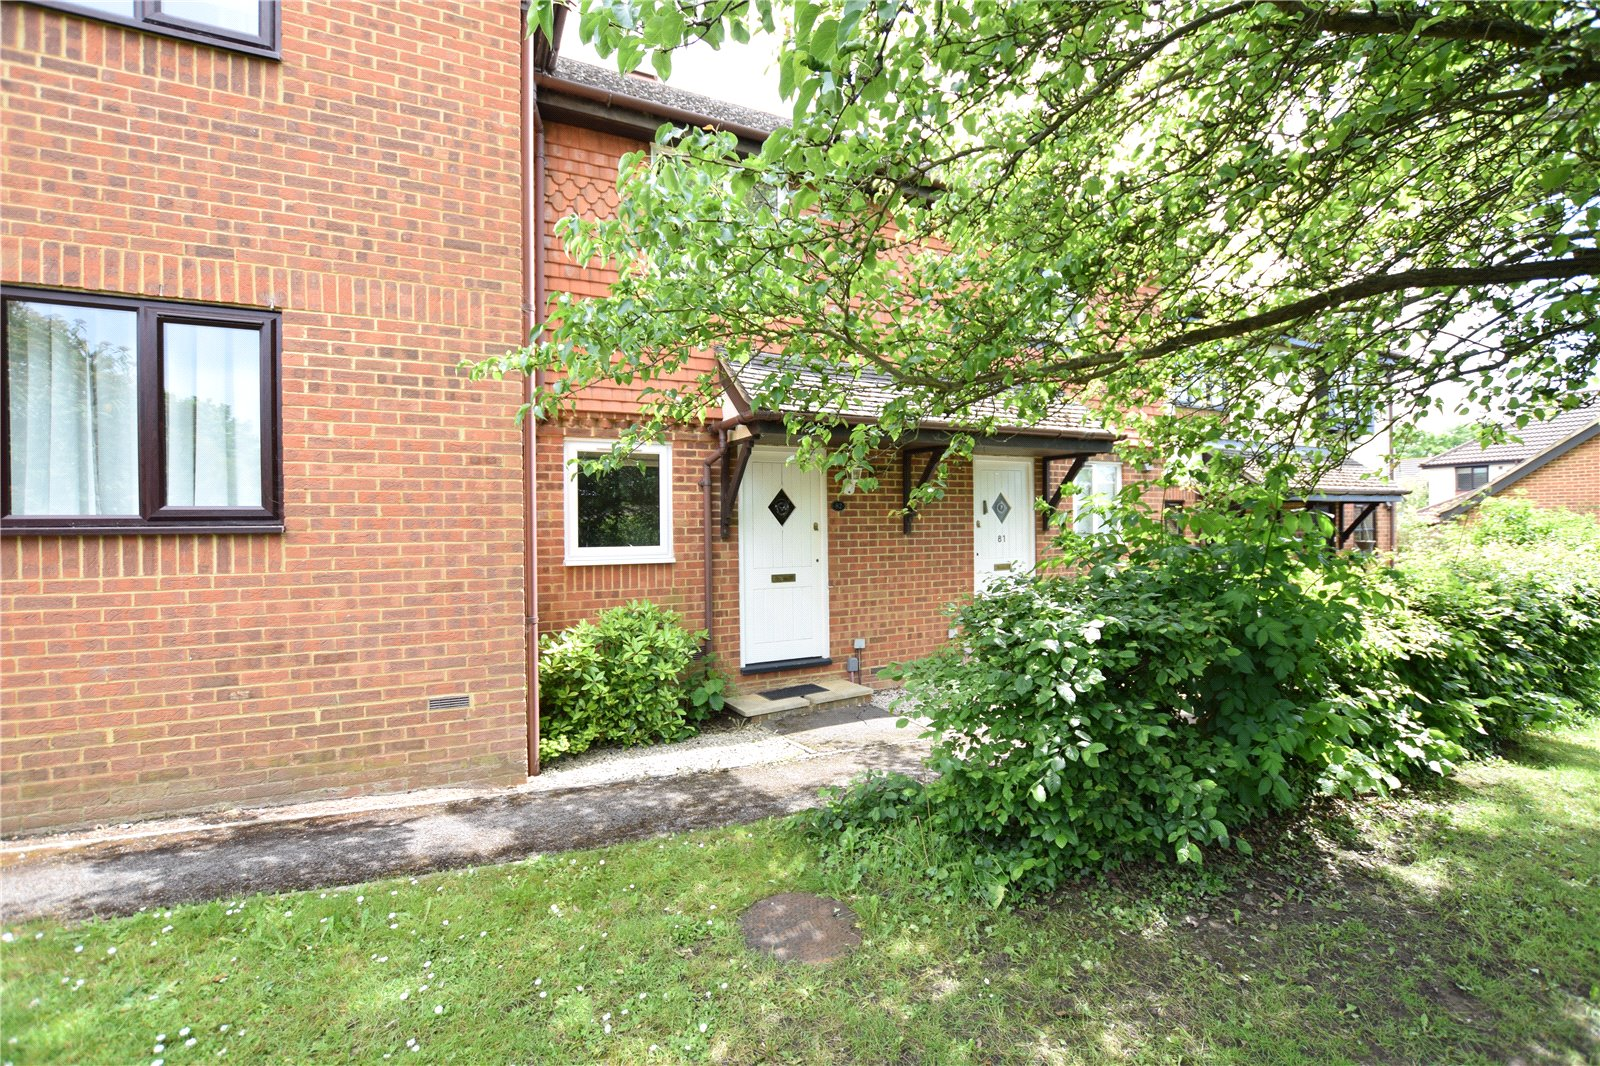 2 Bedrooms Terraced House for sale in Yorkshire Place, Warfield, Bracknell, Berkshire, RG42